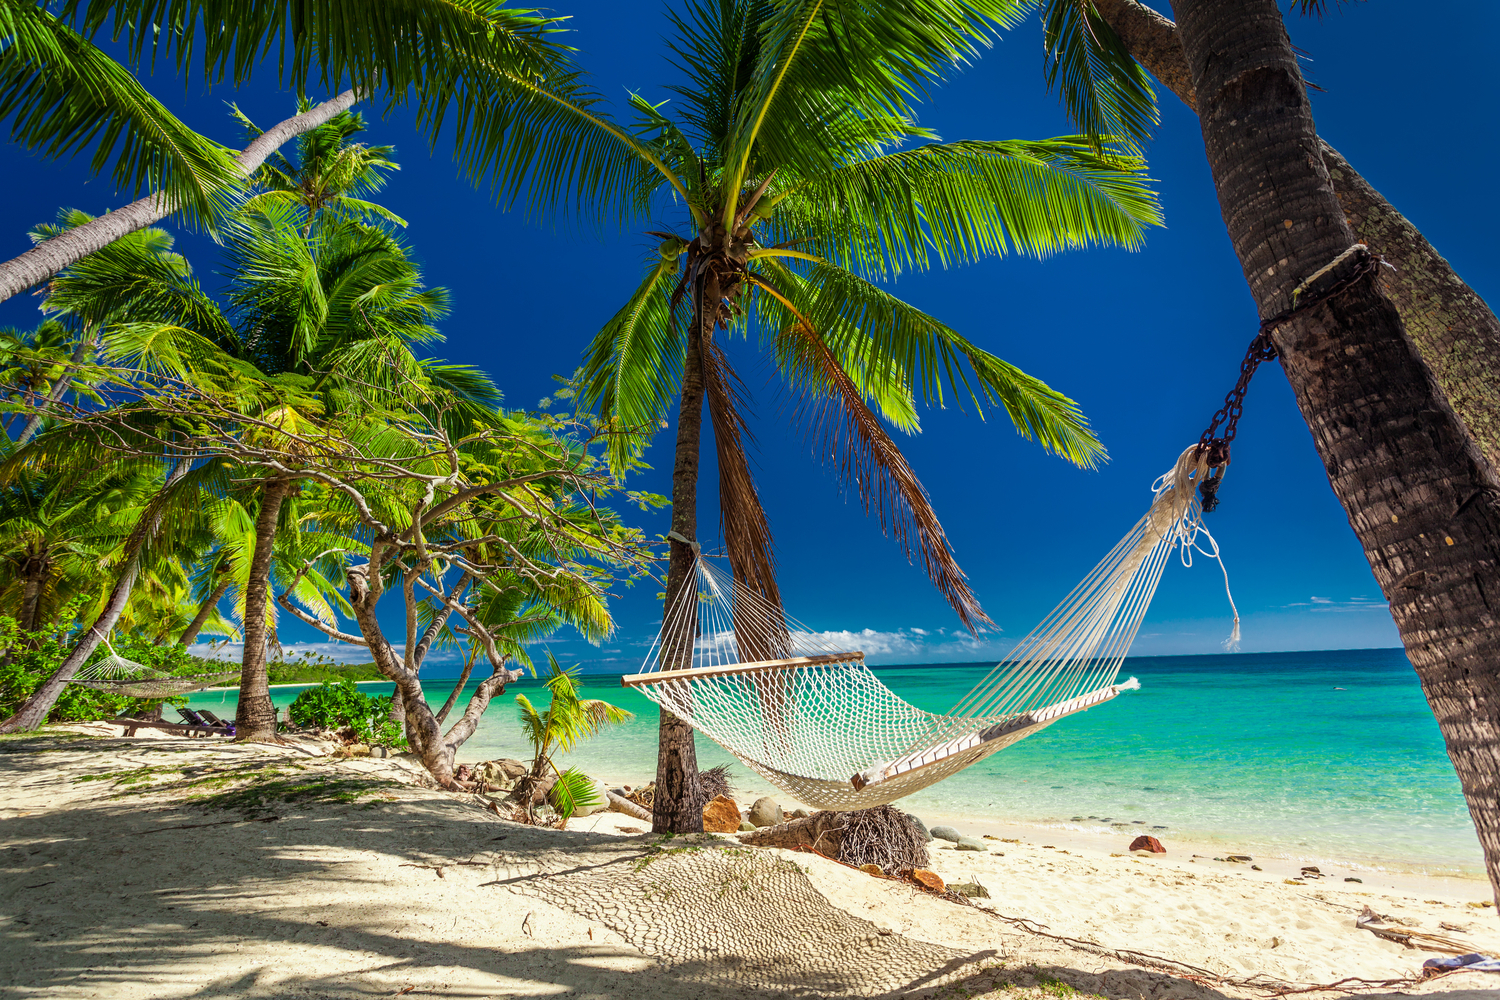 An empty hammock swinging between two palm trees on a white sandy beach in Fiji with crystal-clear water in the background